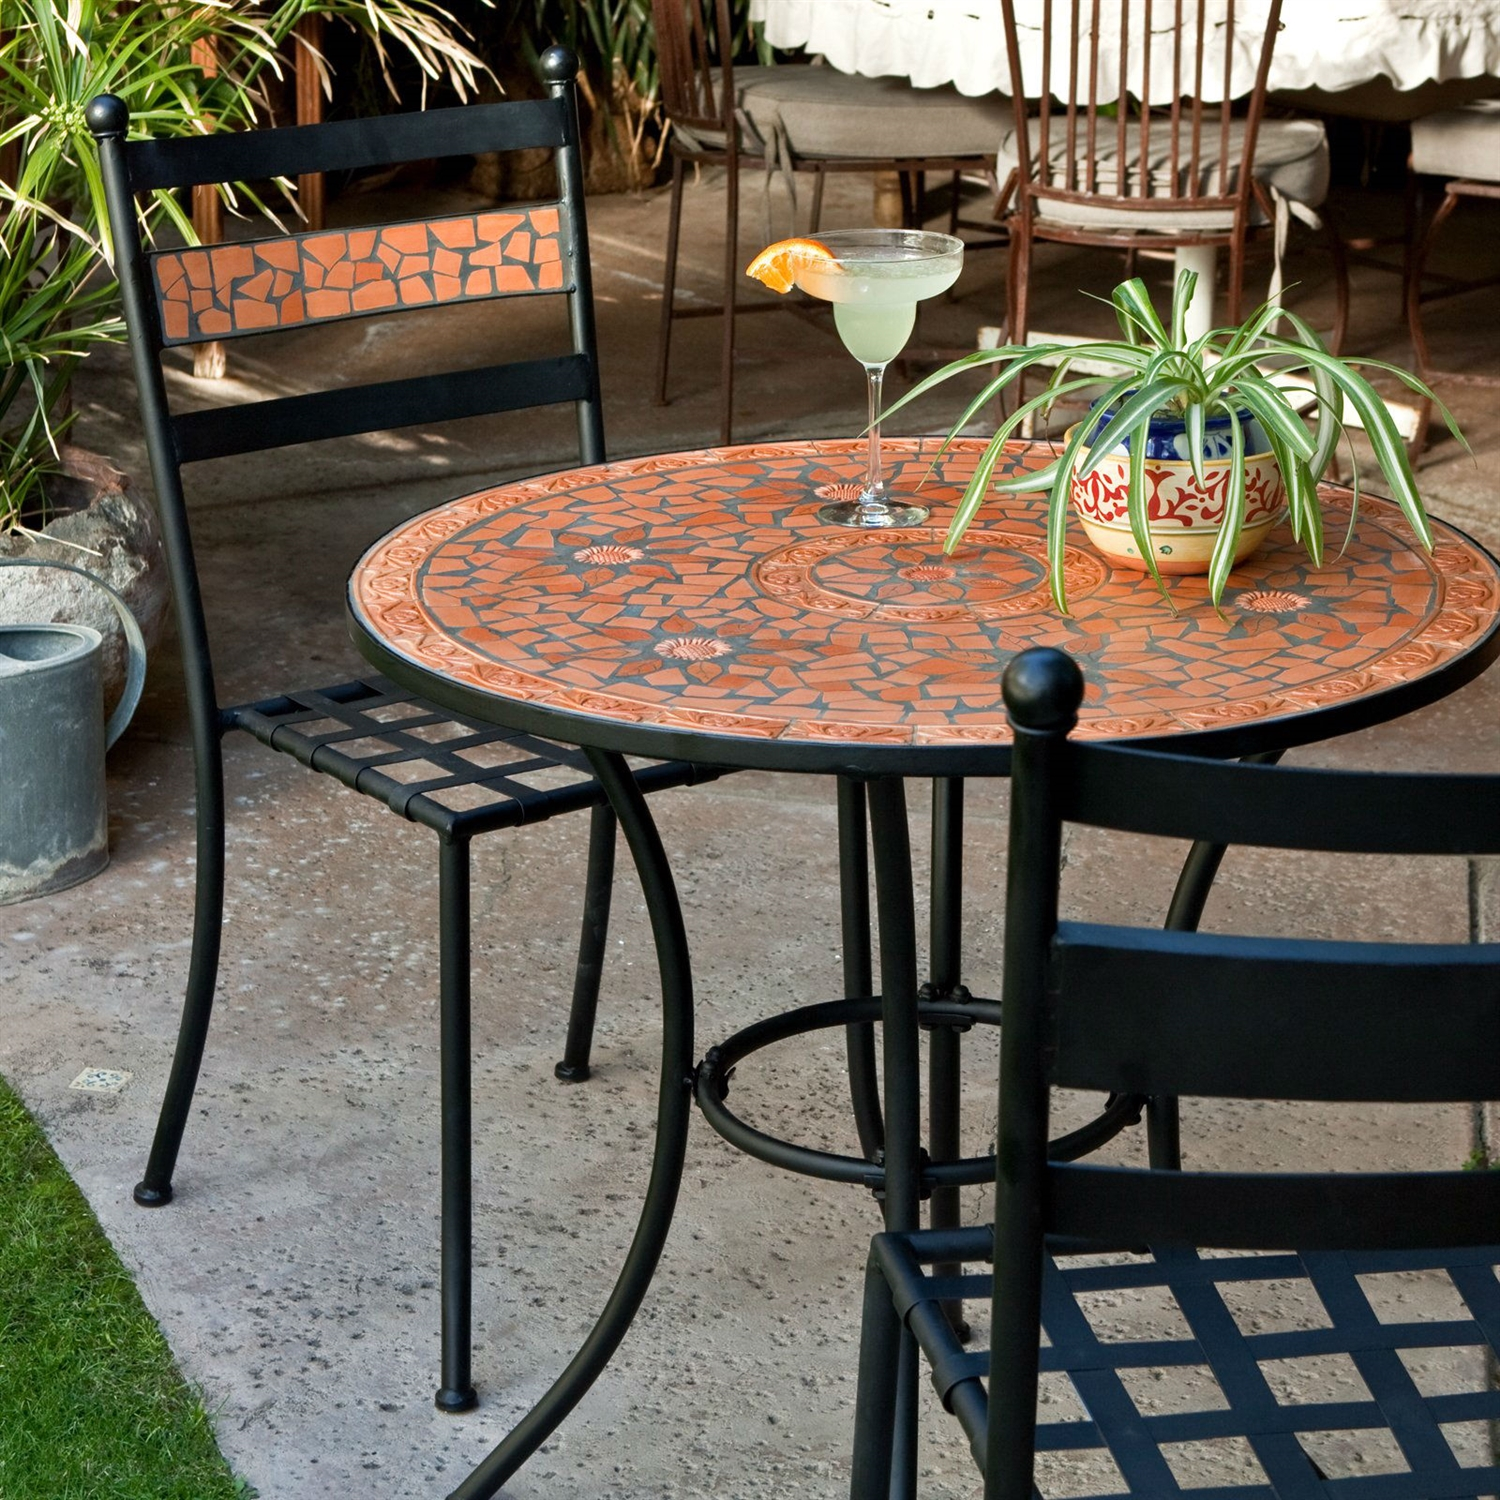 3 piece black metal patio bistro set with terra cotta tiles - Garden Furniture 3 Piece